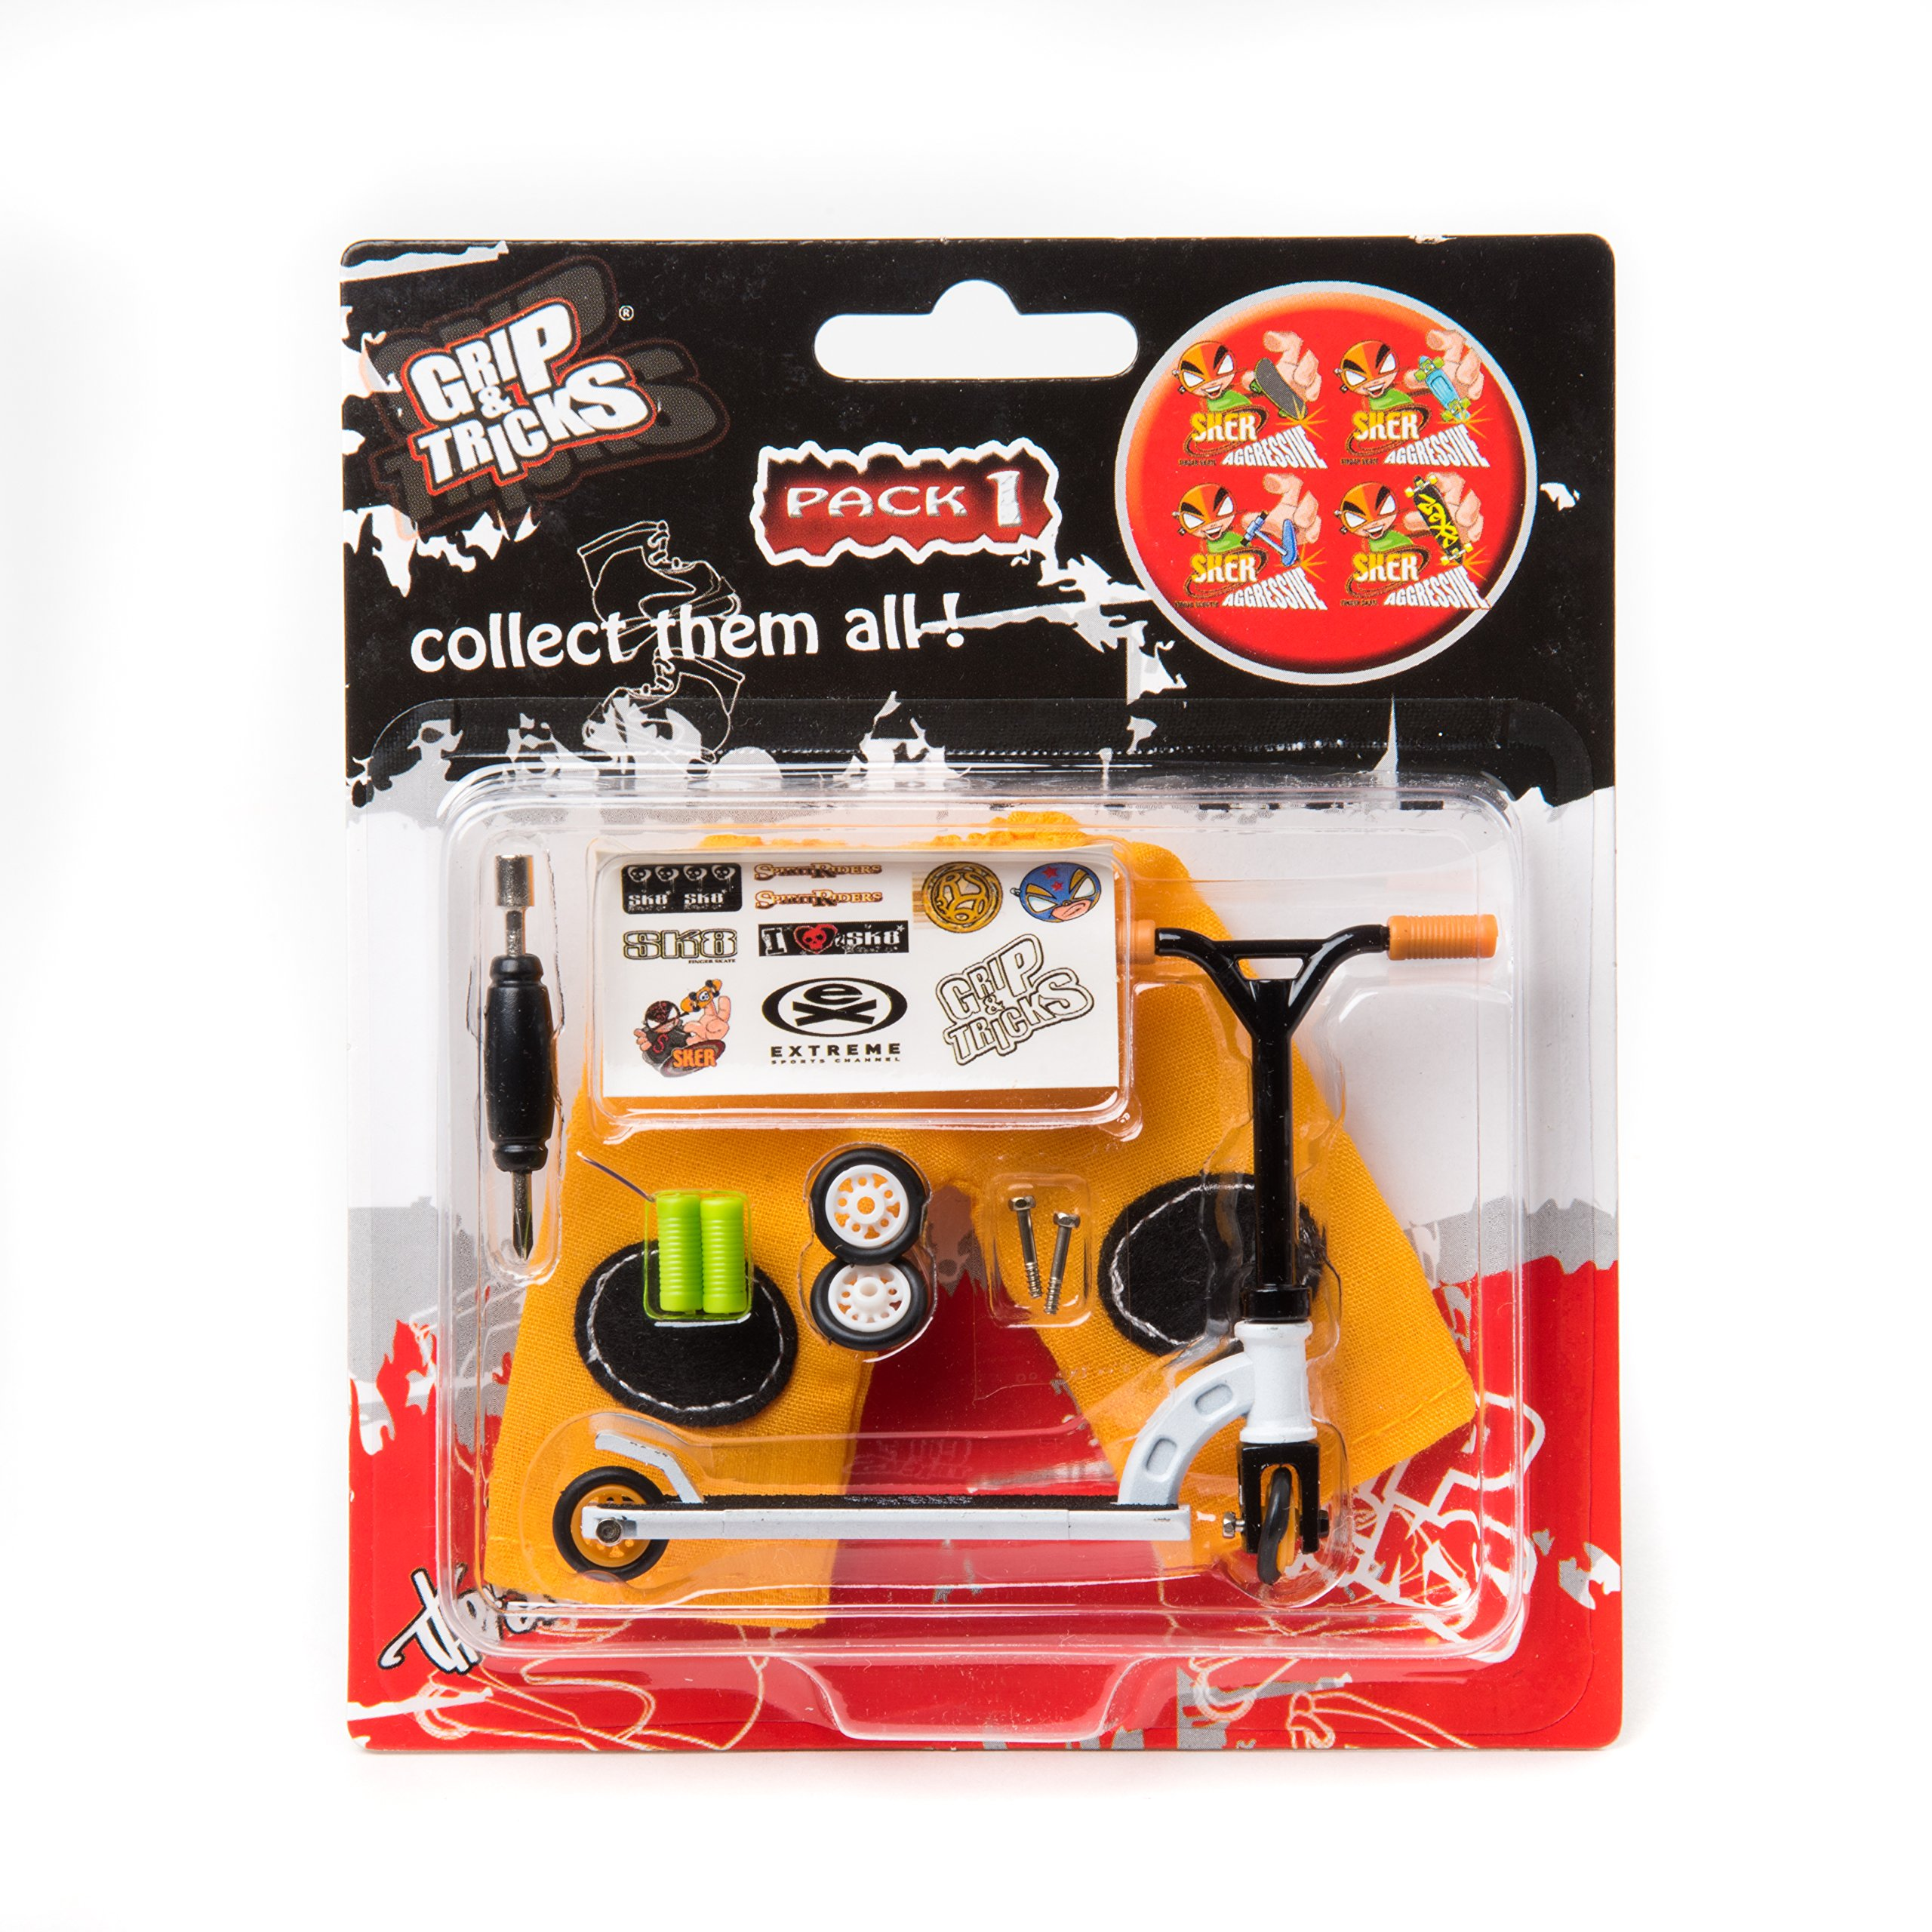 LOT of 4 Scooters - Grip and Tricks - Great Deal 4 Pack of Finger Scooters - Skate - Pack1 by Grip&Tricks (Image #3)